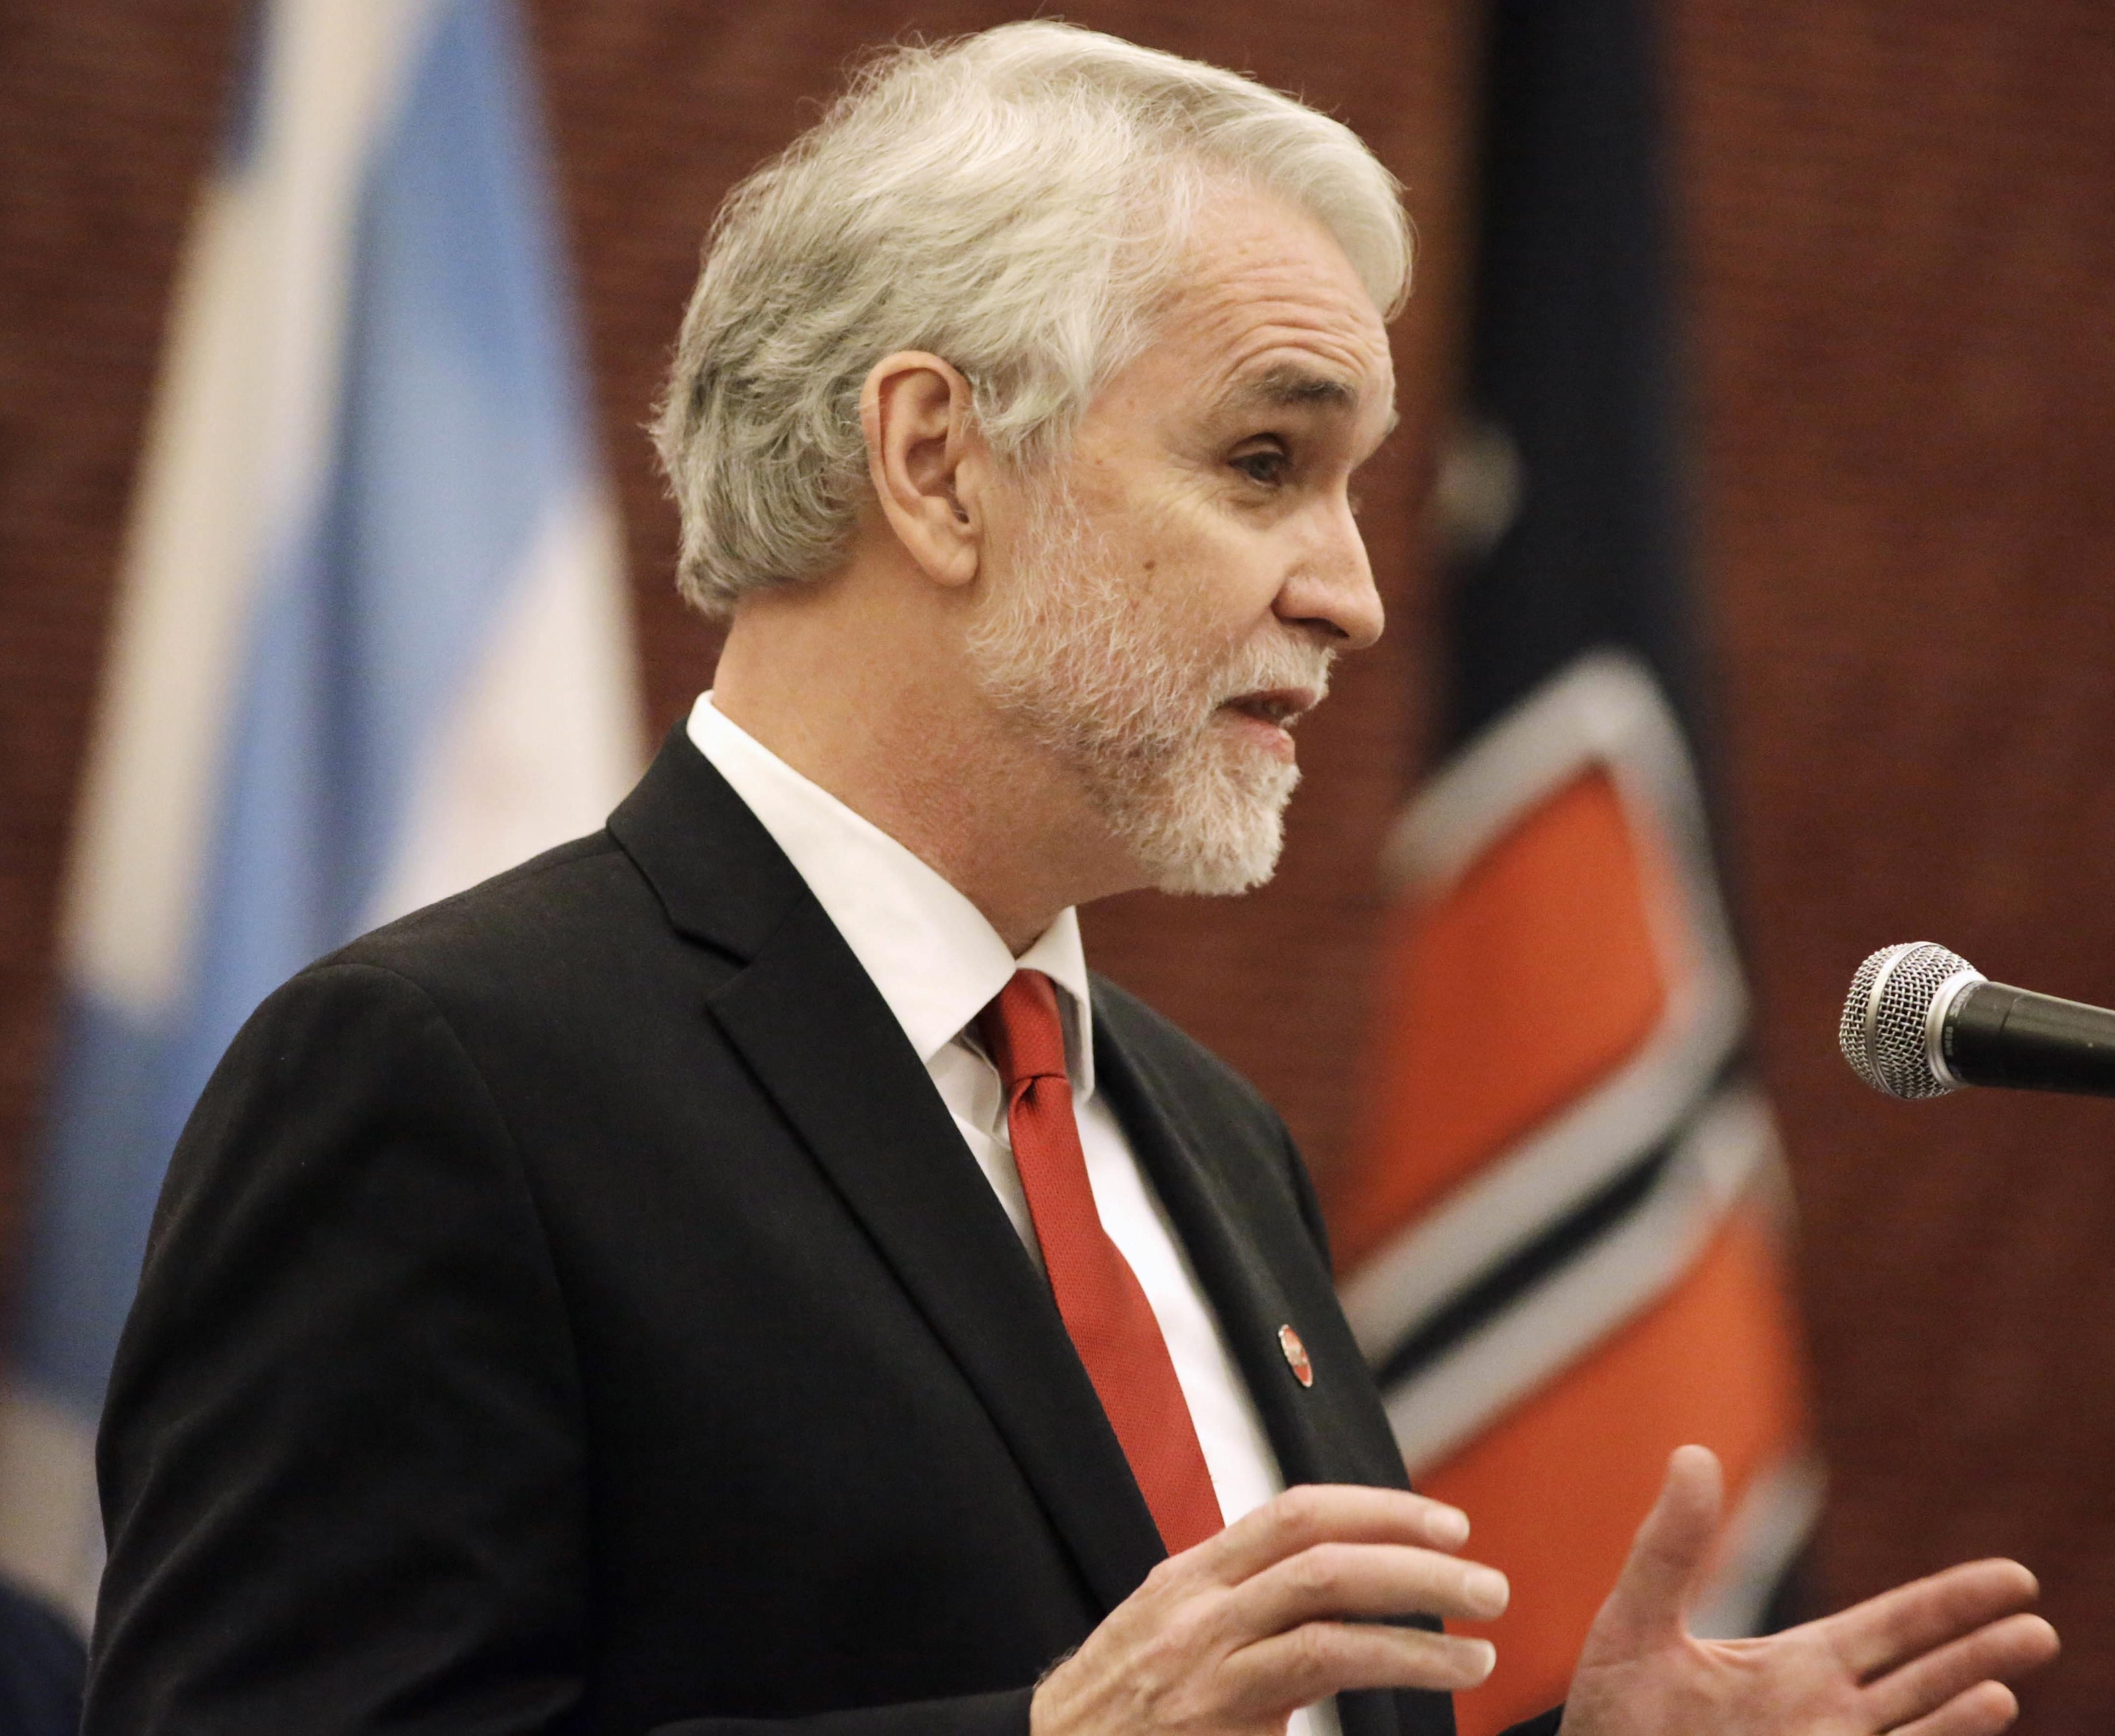 Timothy L. Killeen speaks after being introduced as the next president of the University of Illinois on May 18.